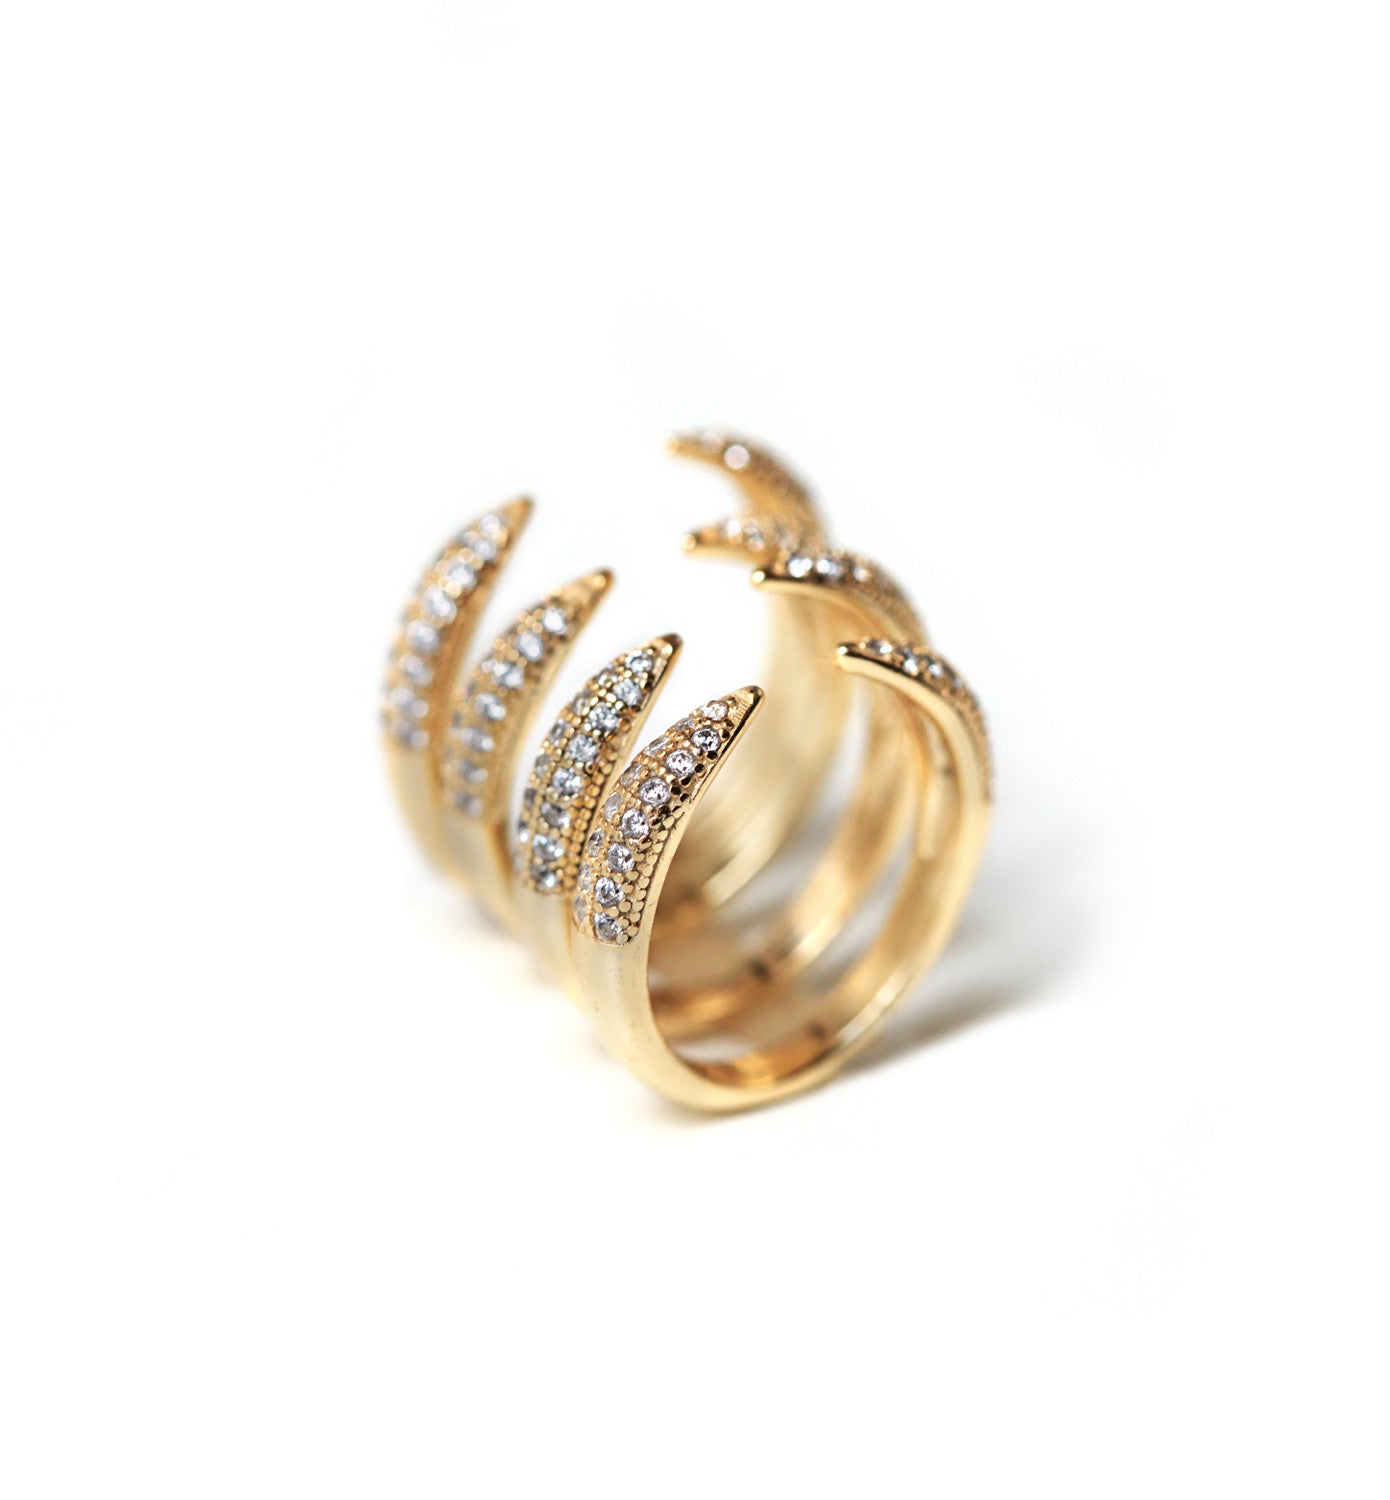 Claw Pave Ring Set, Rings - AMY O. Jewelry